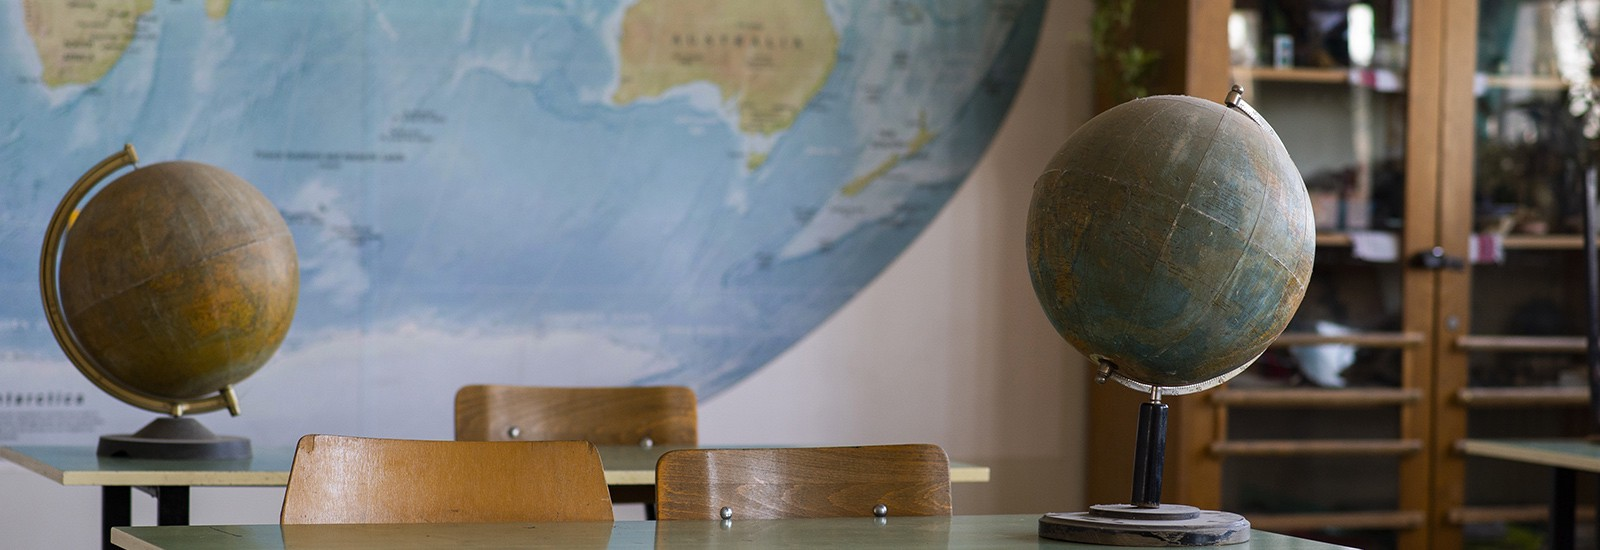 Globes in a school classroom